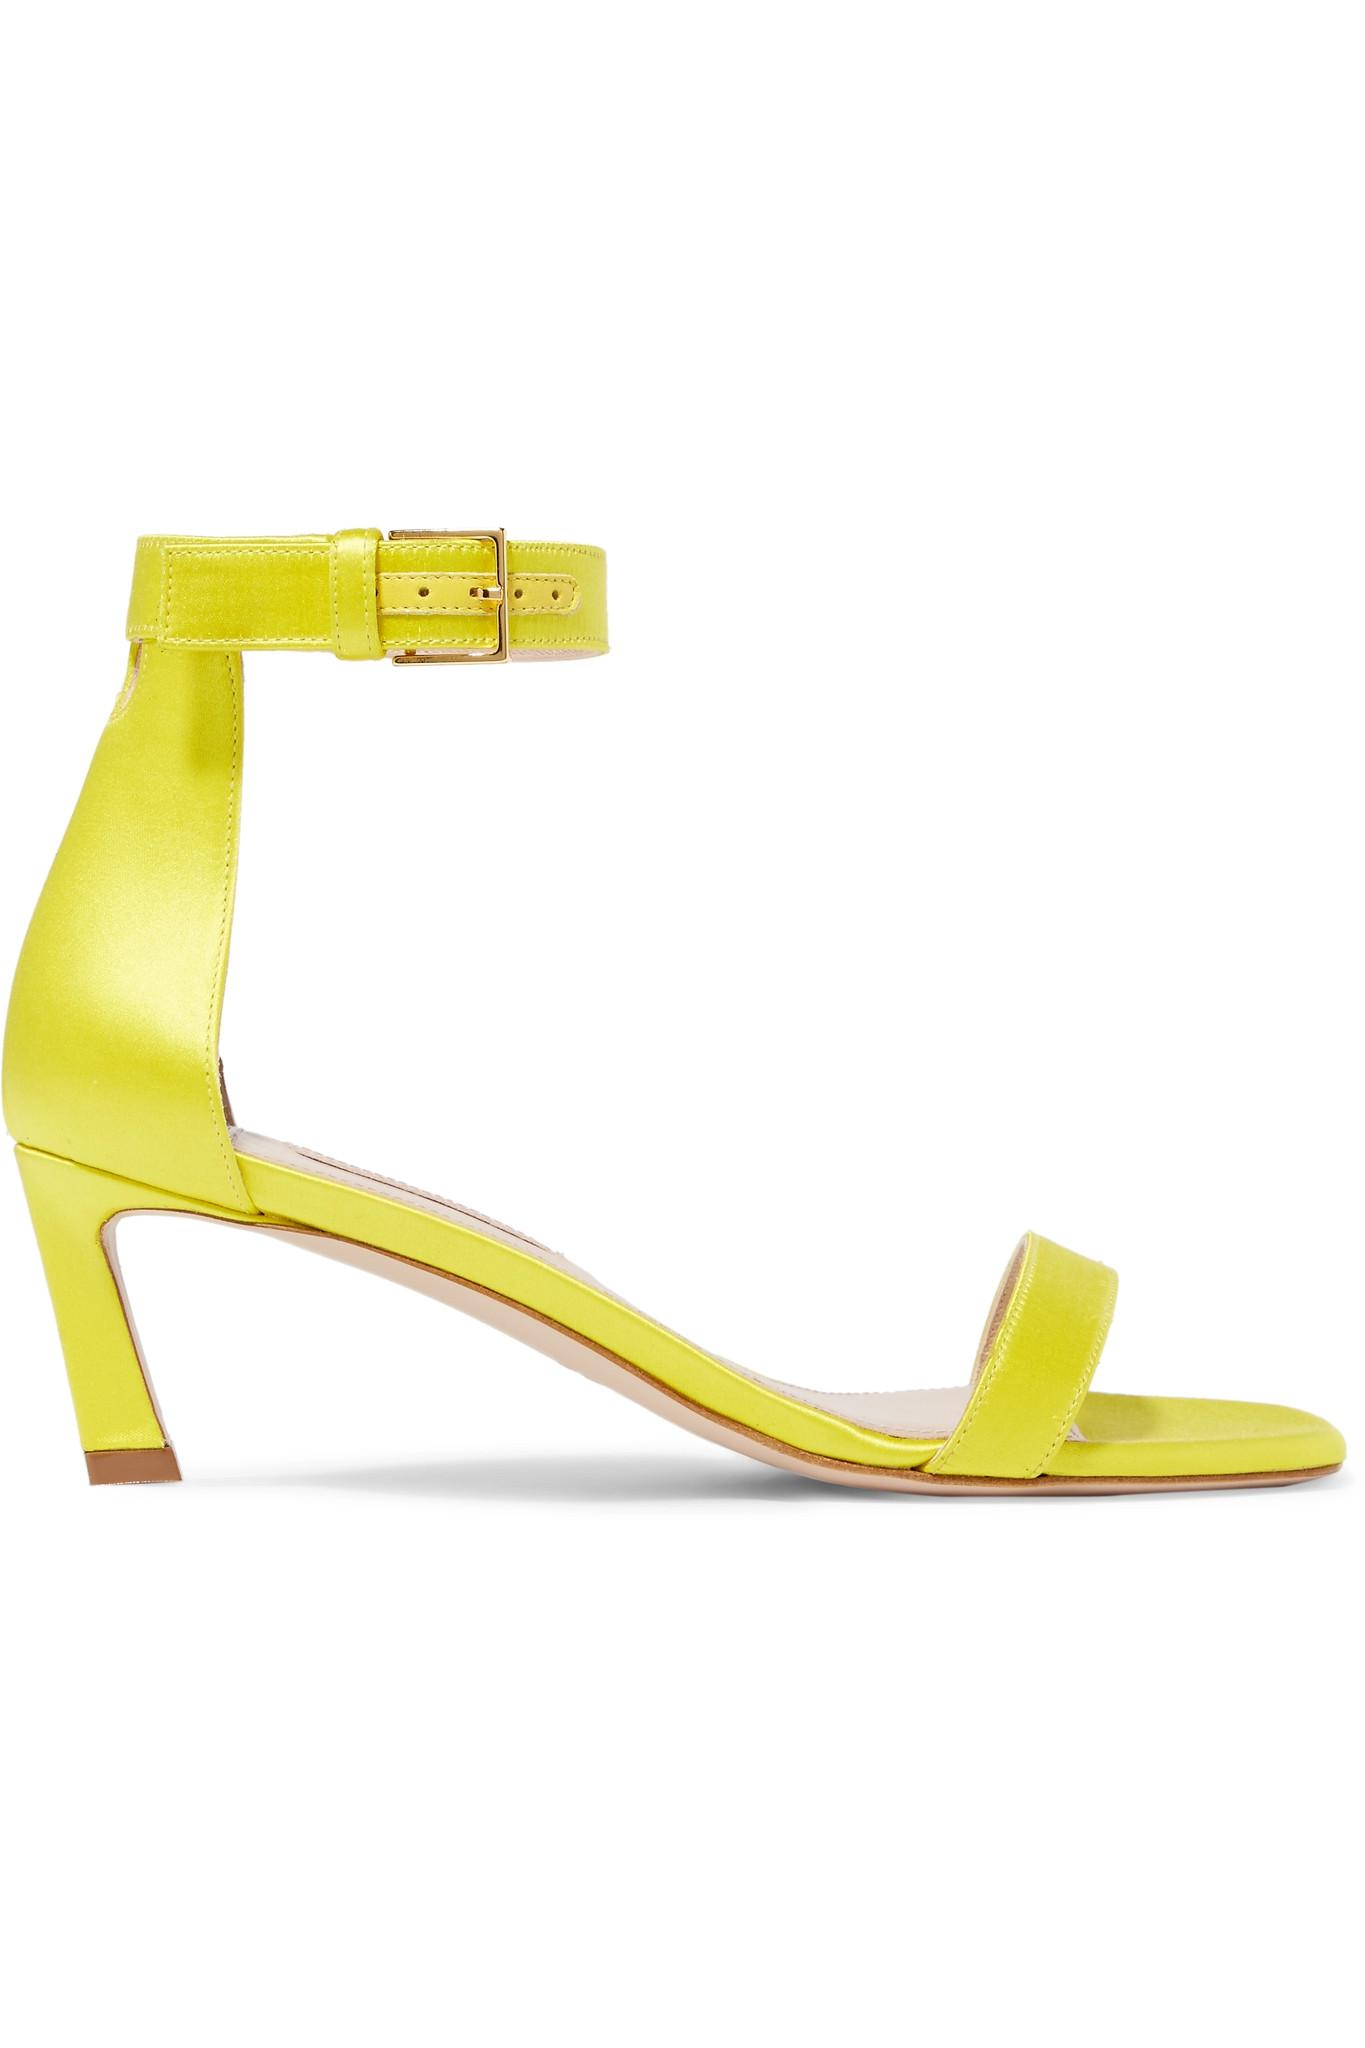 Squarenudist Satin Sandals - Yellow Stuart Weitzman VLbA3